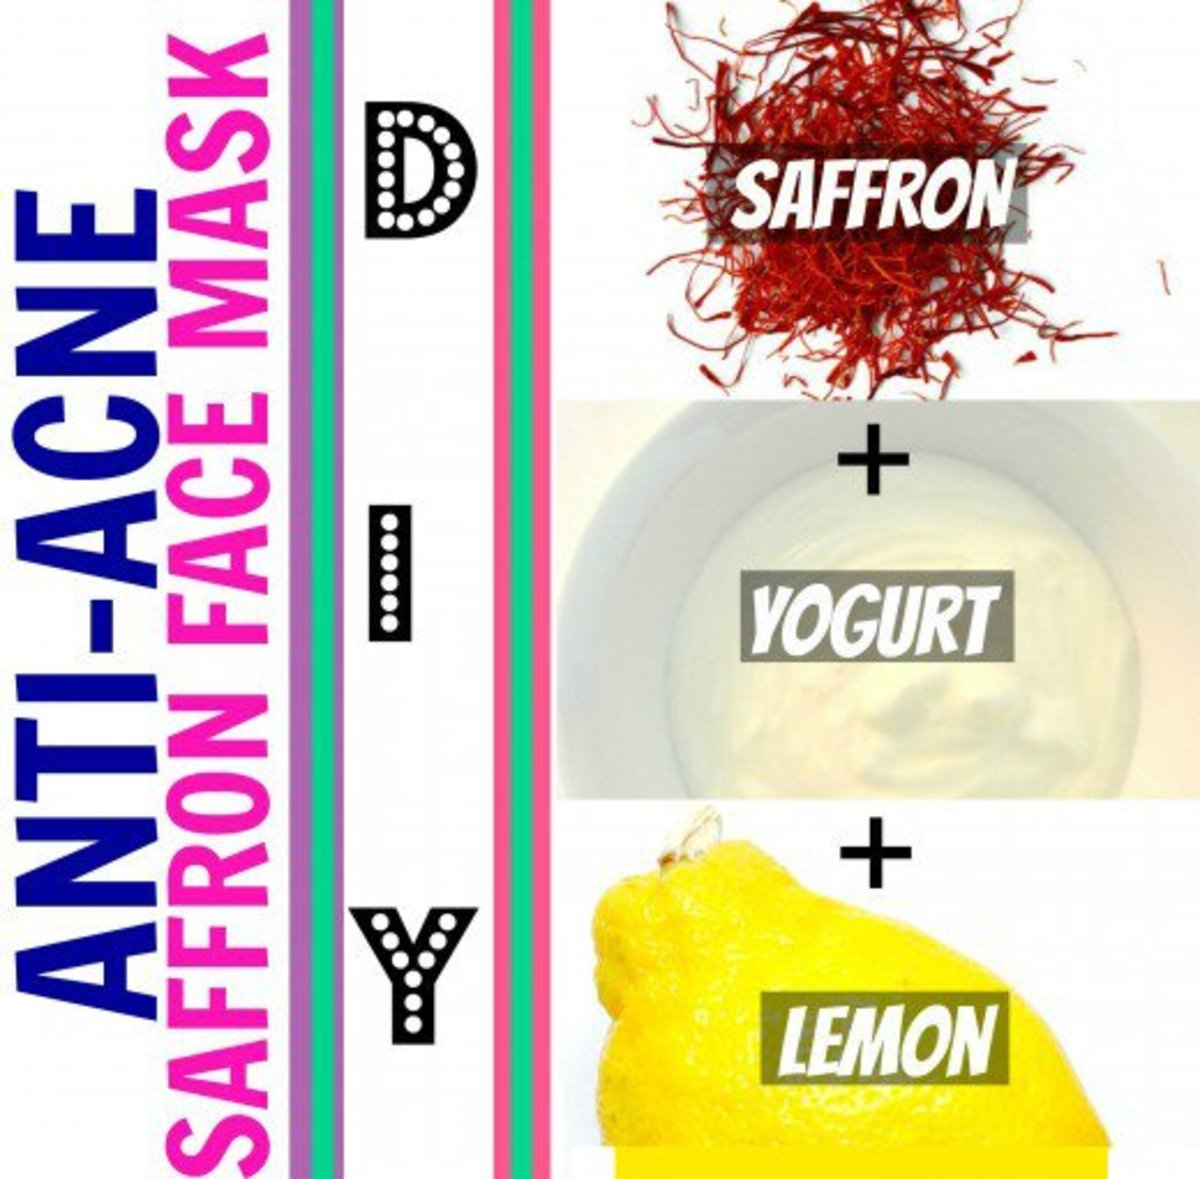 Saffron has antibacterial properties that when mixed with lemon and yogurt will create a potent anti-acne face mask